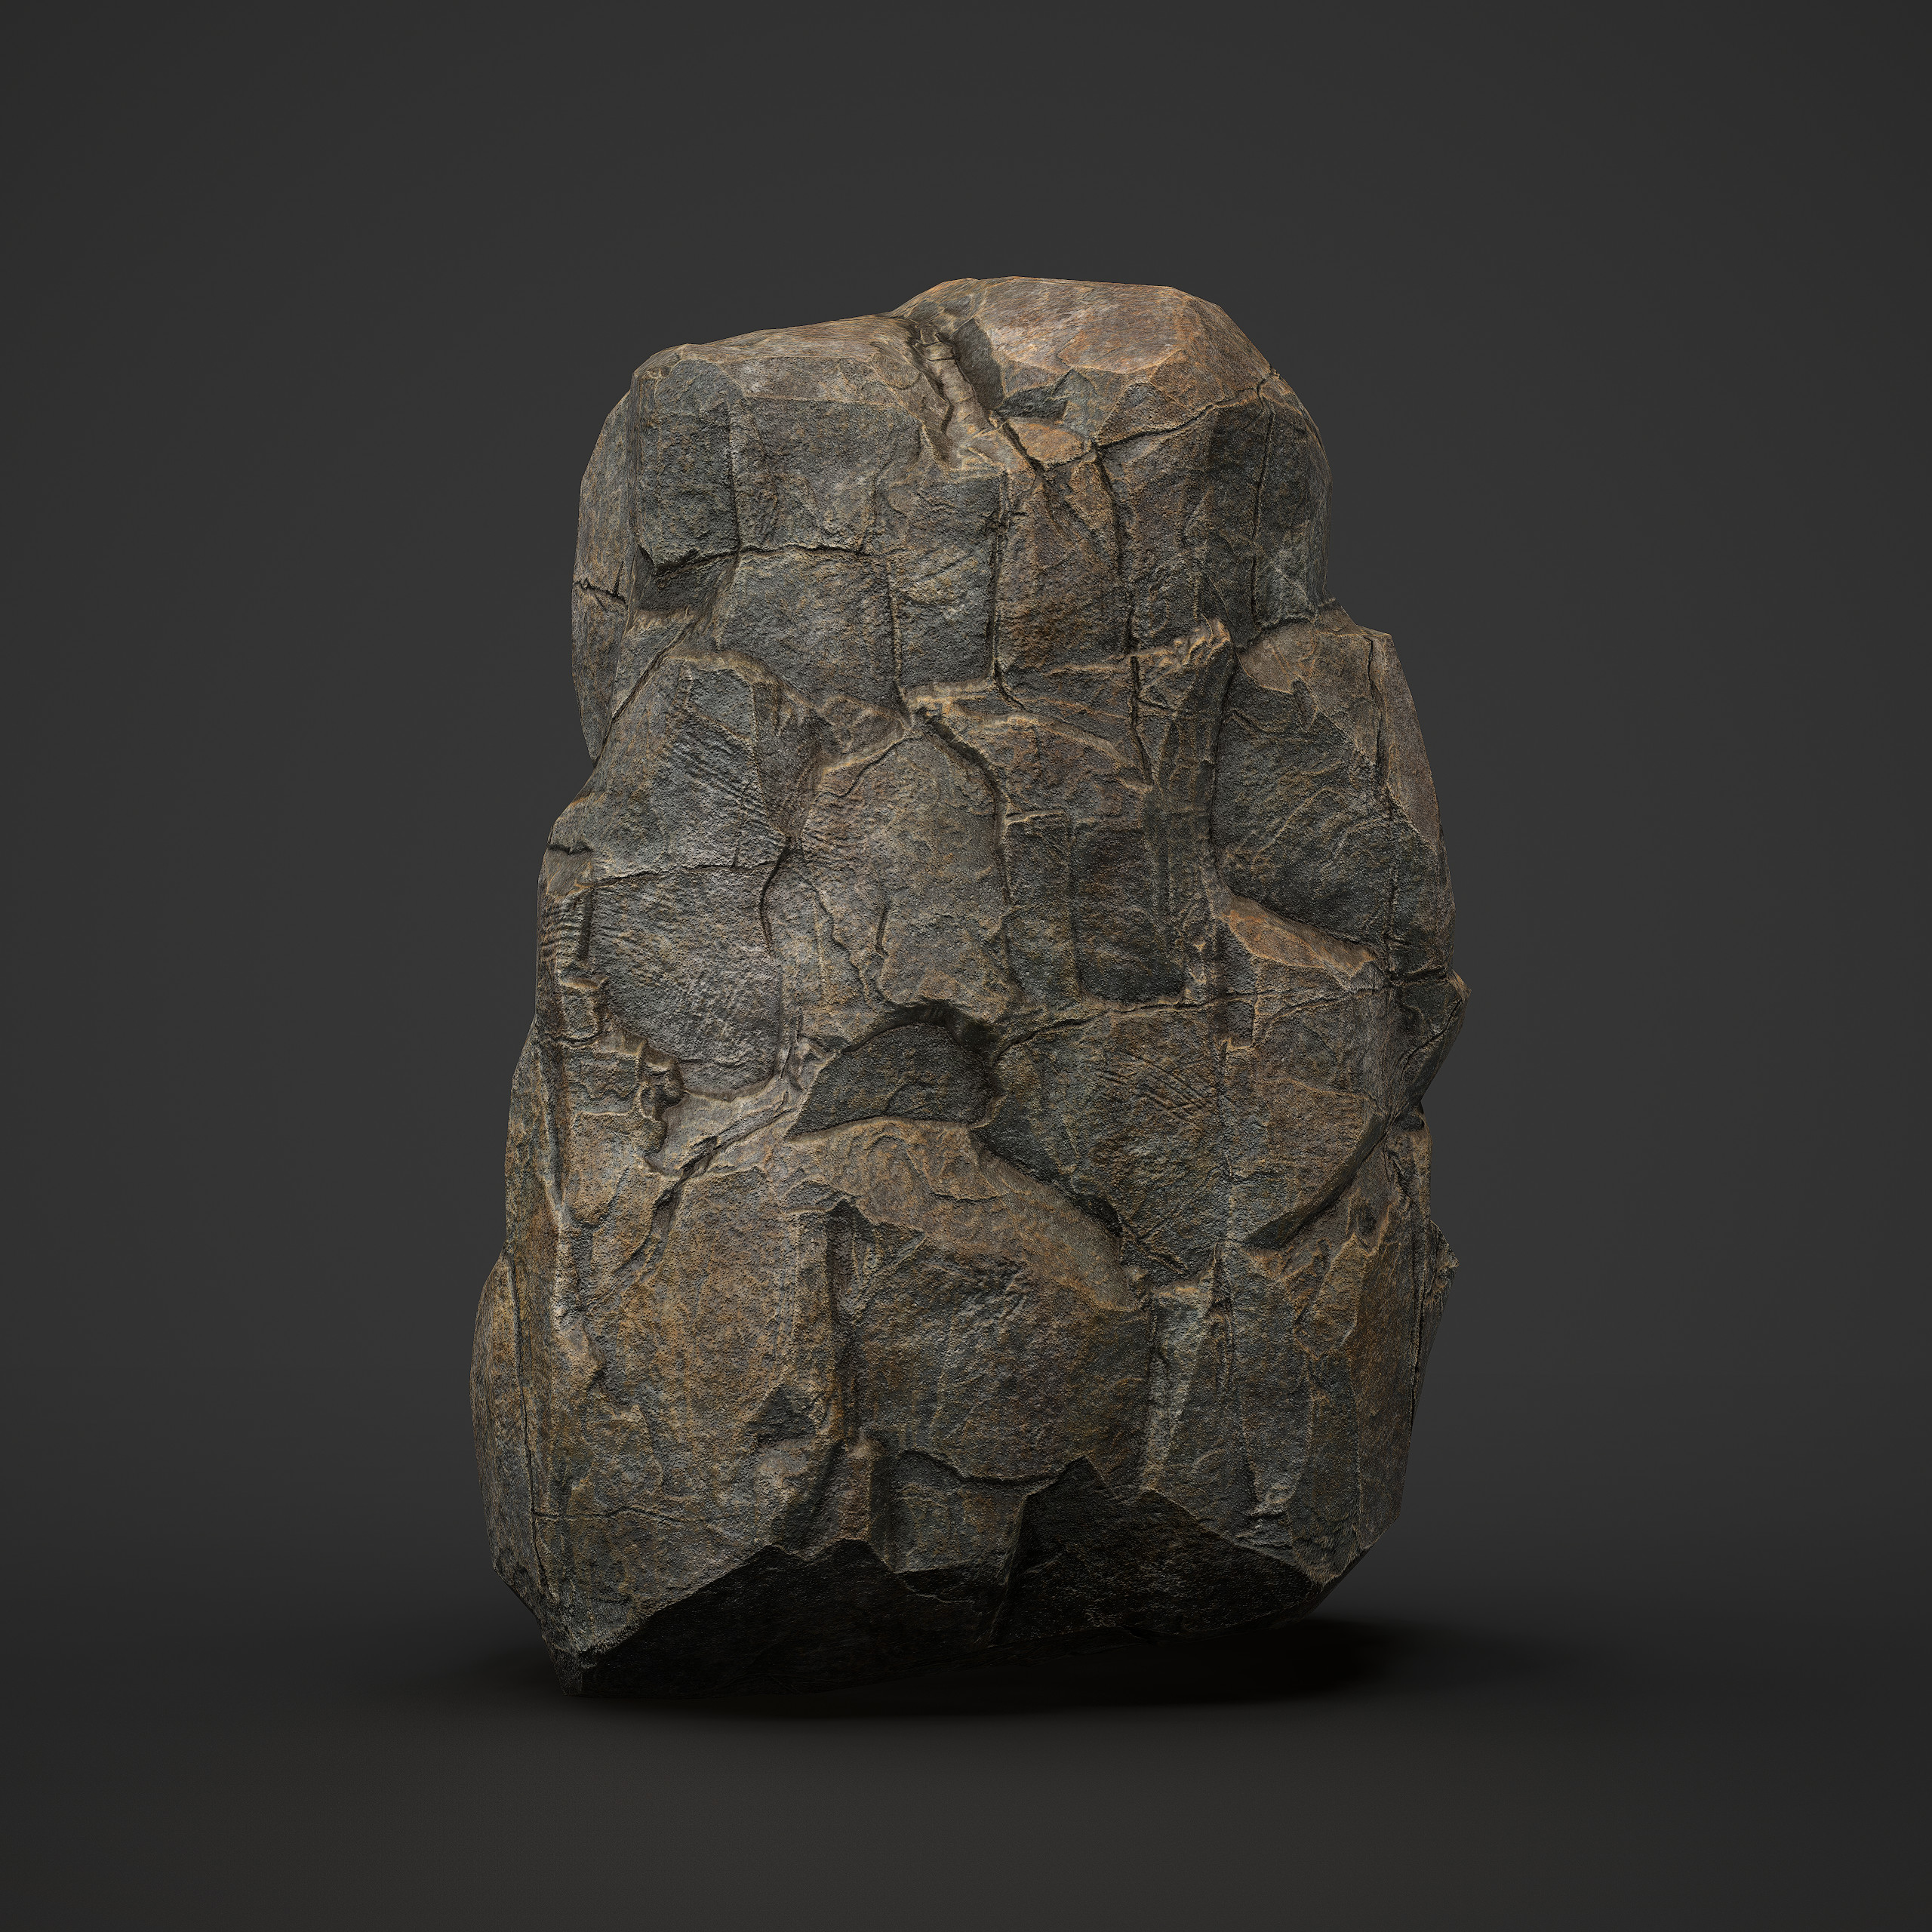 The total rock is 2002 Tris